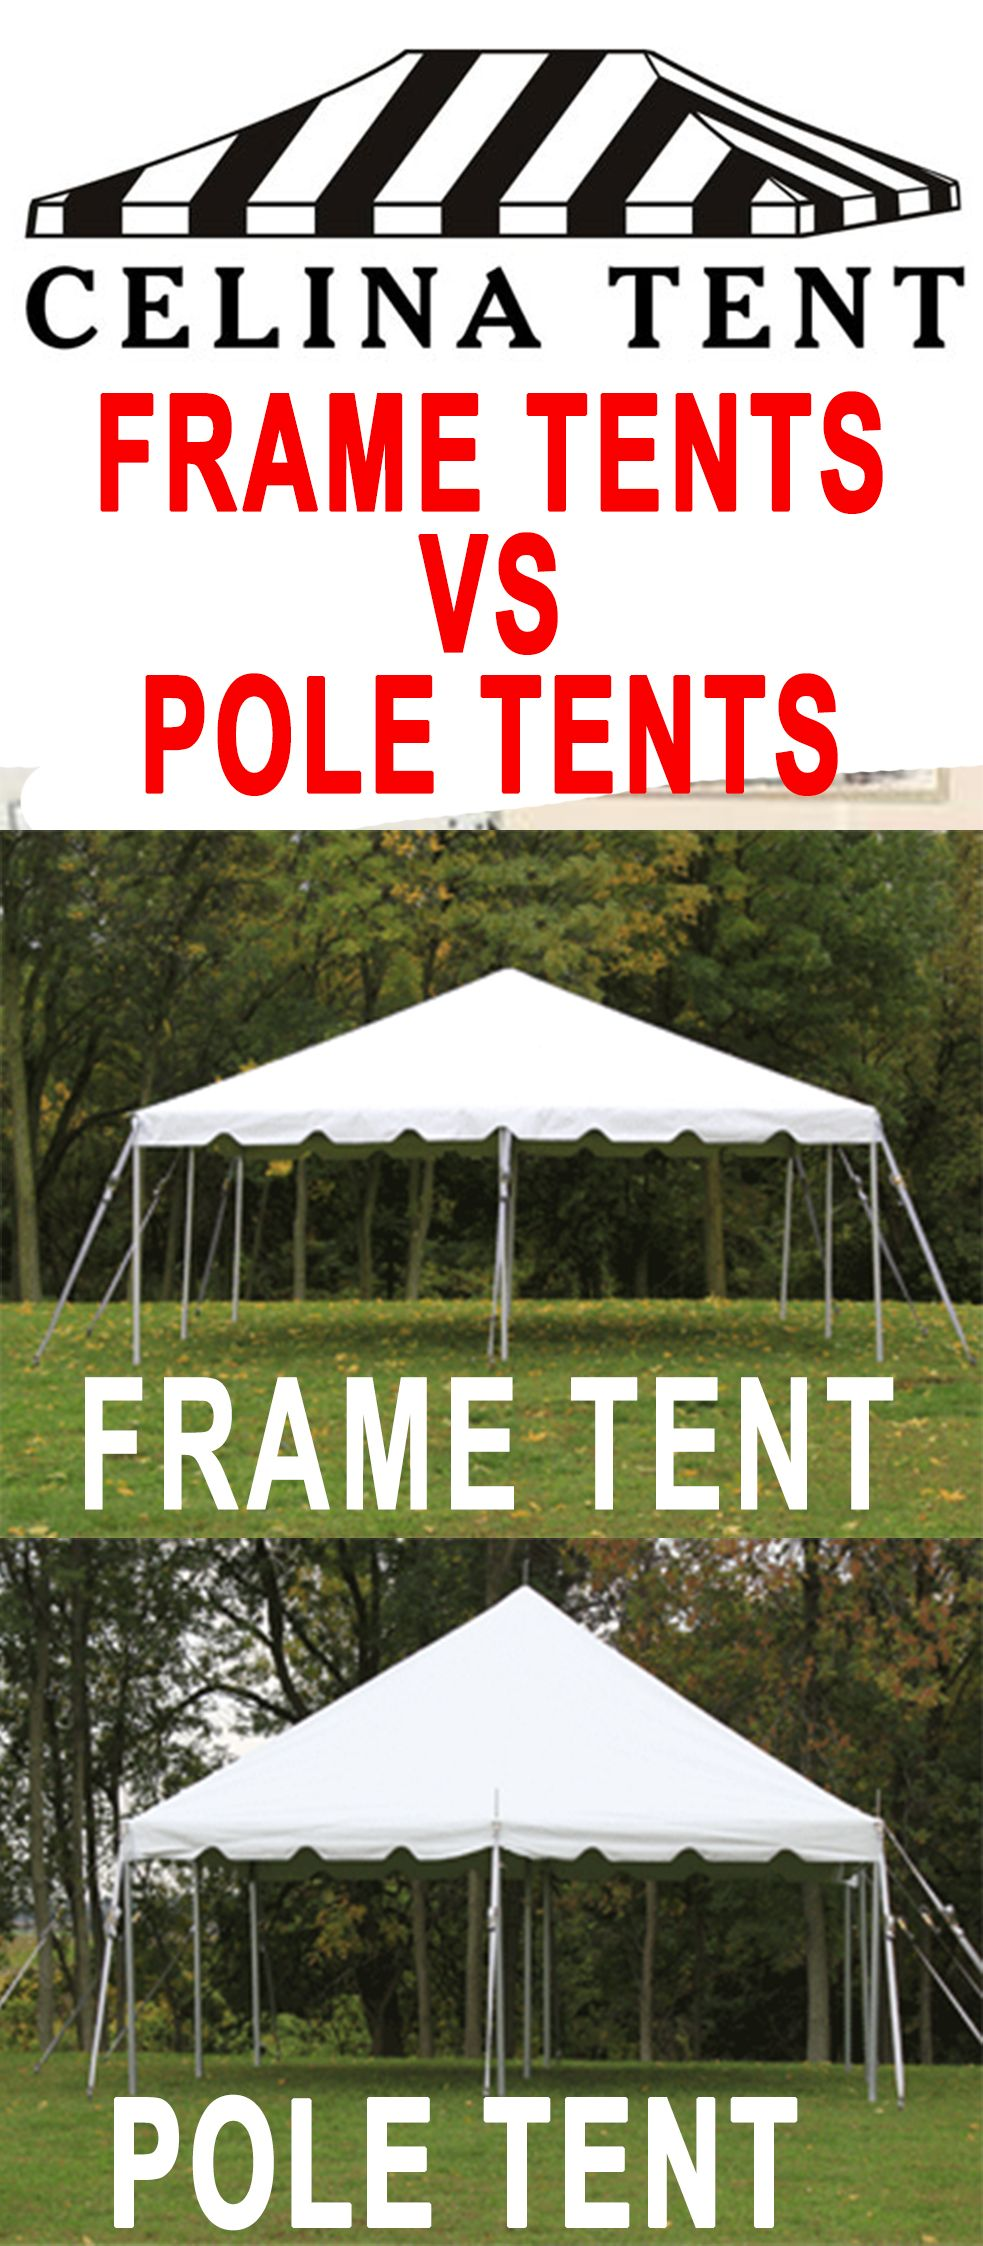 Celina Tent offers 6 different classes of #tents, #canopies ...